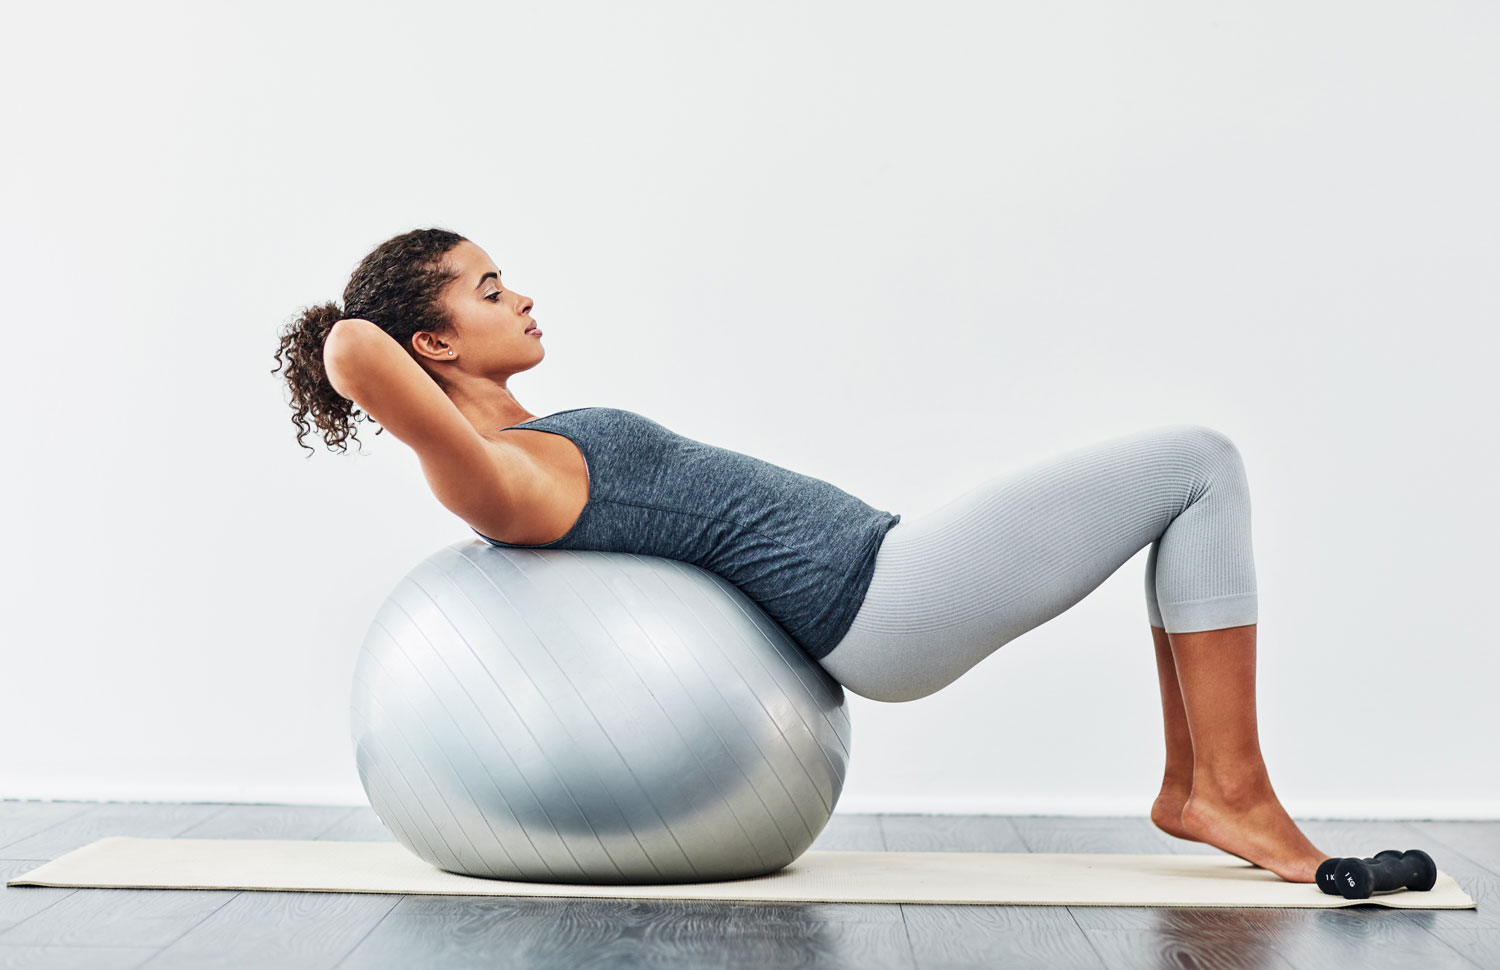 working out on exercise ball